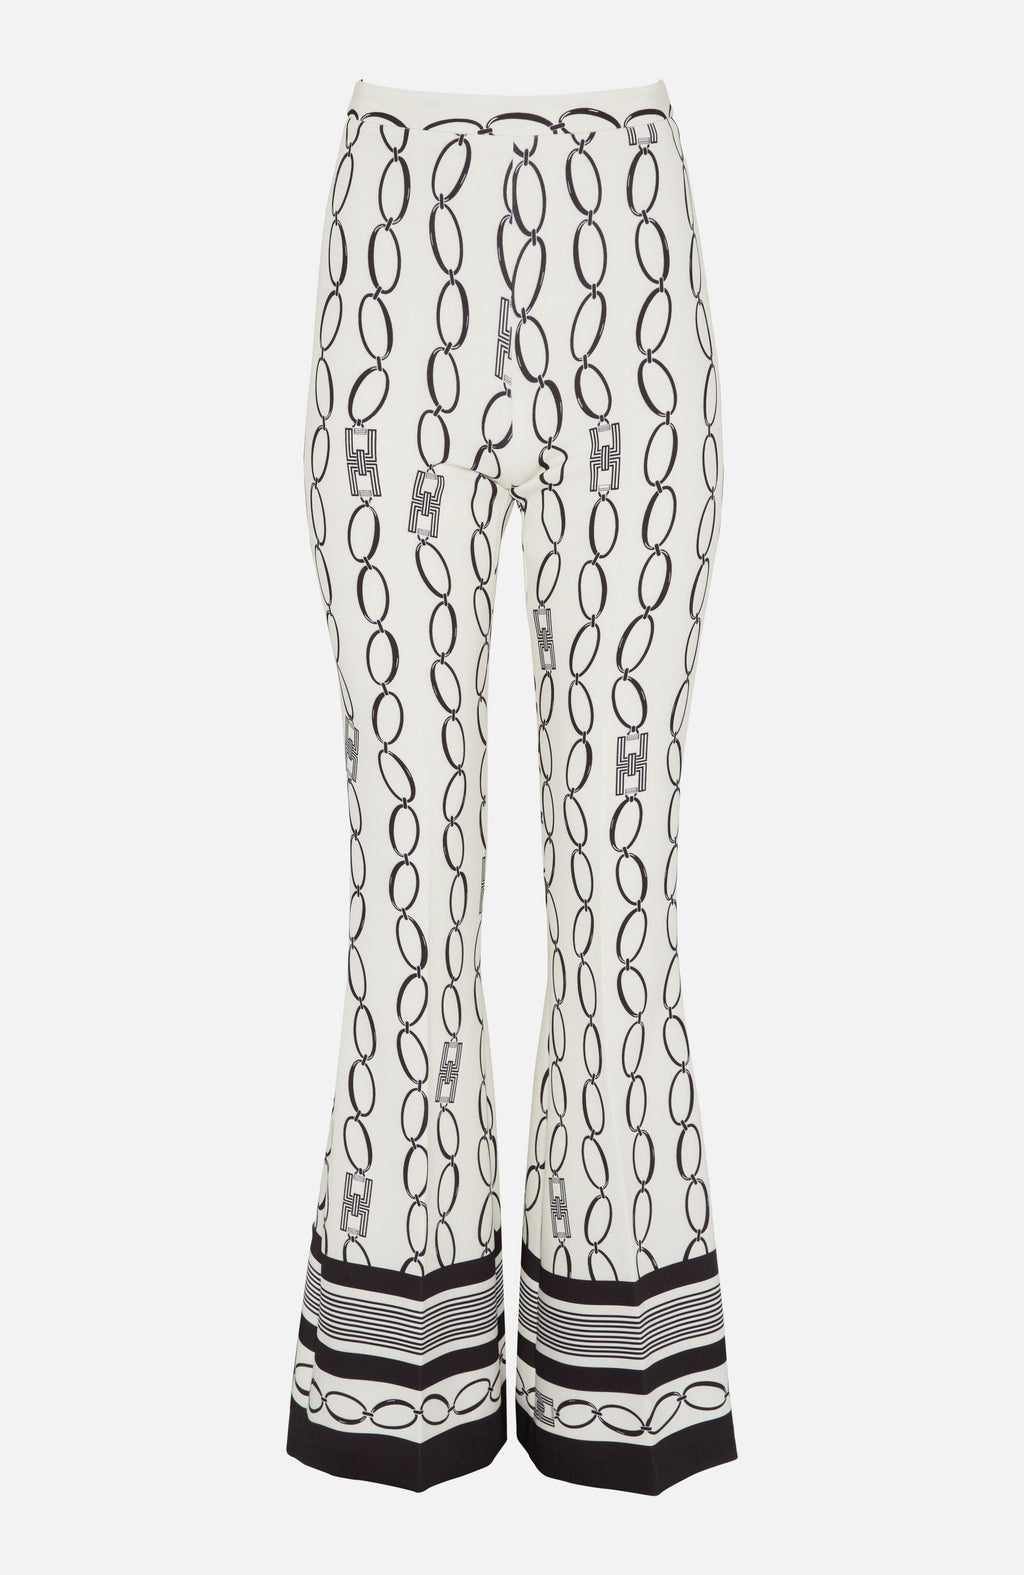 Elisabetta Franchi Ivory Chain Print Trousers